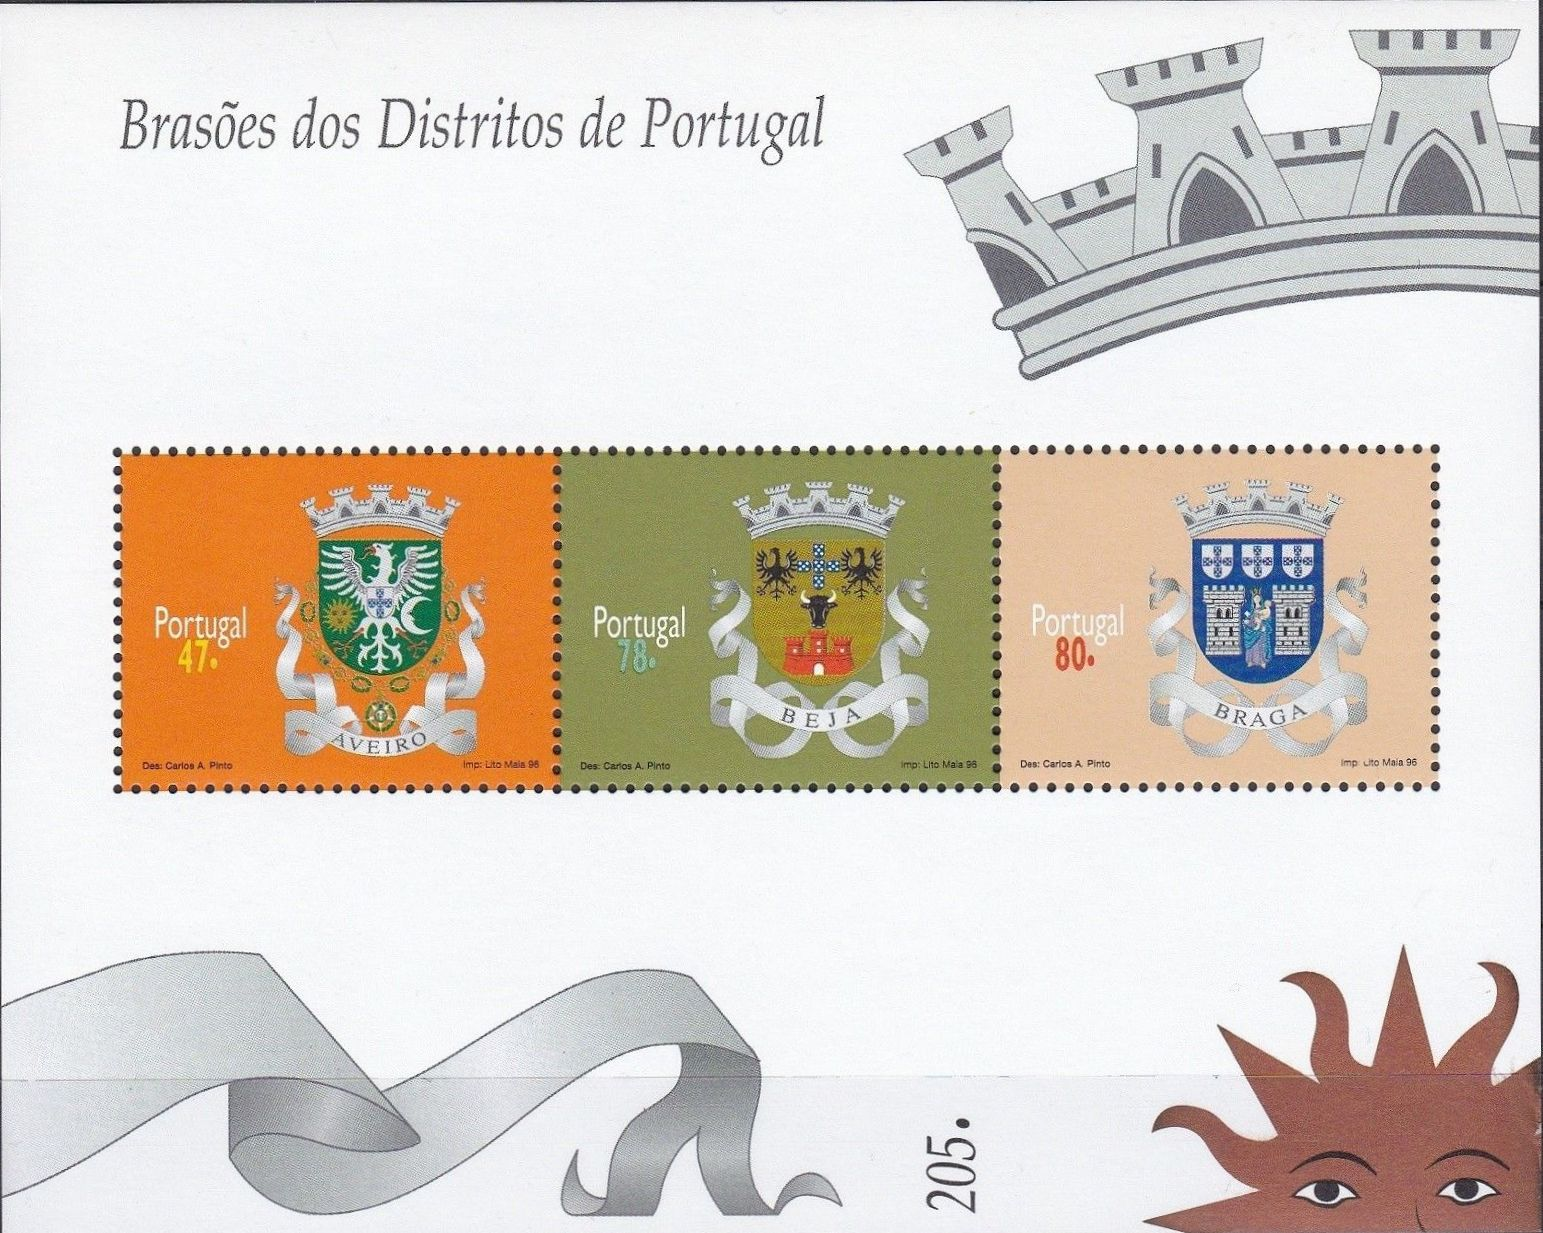 Portugal 1996 Arms of the Districts of Portugal (1st Group) SSa.jpg